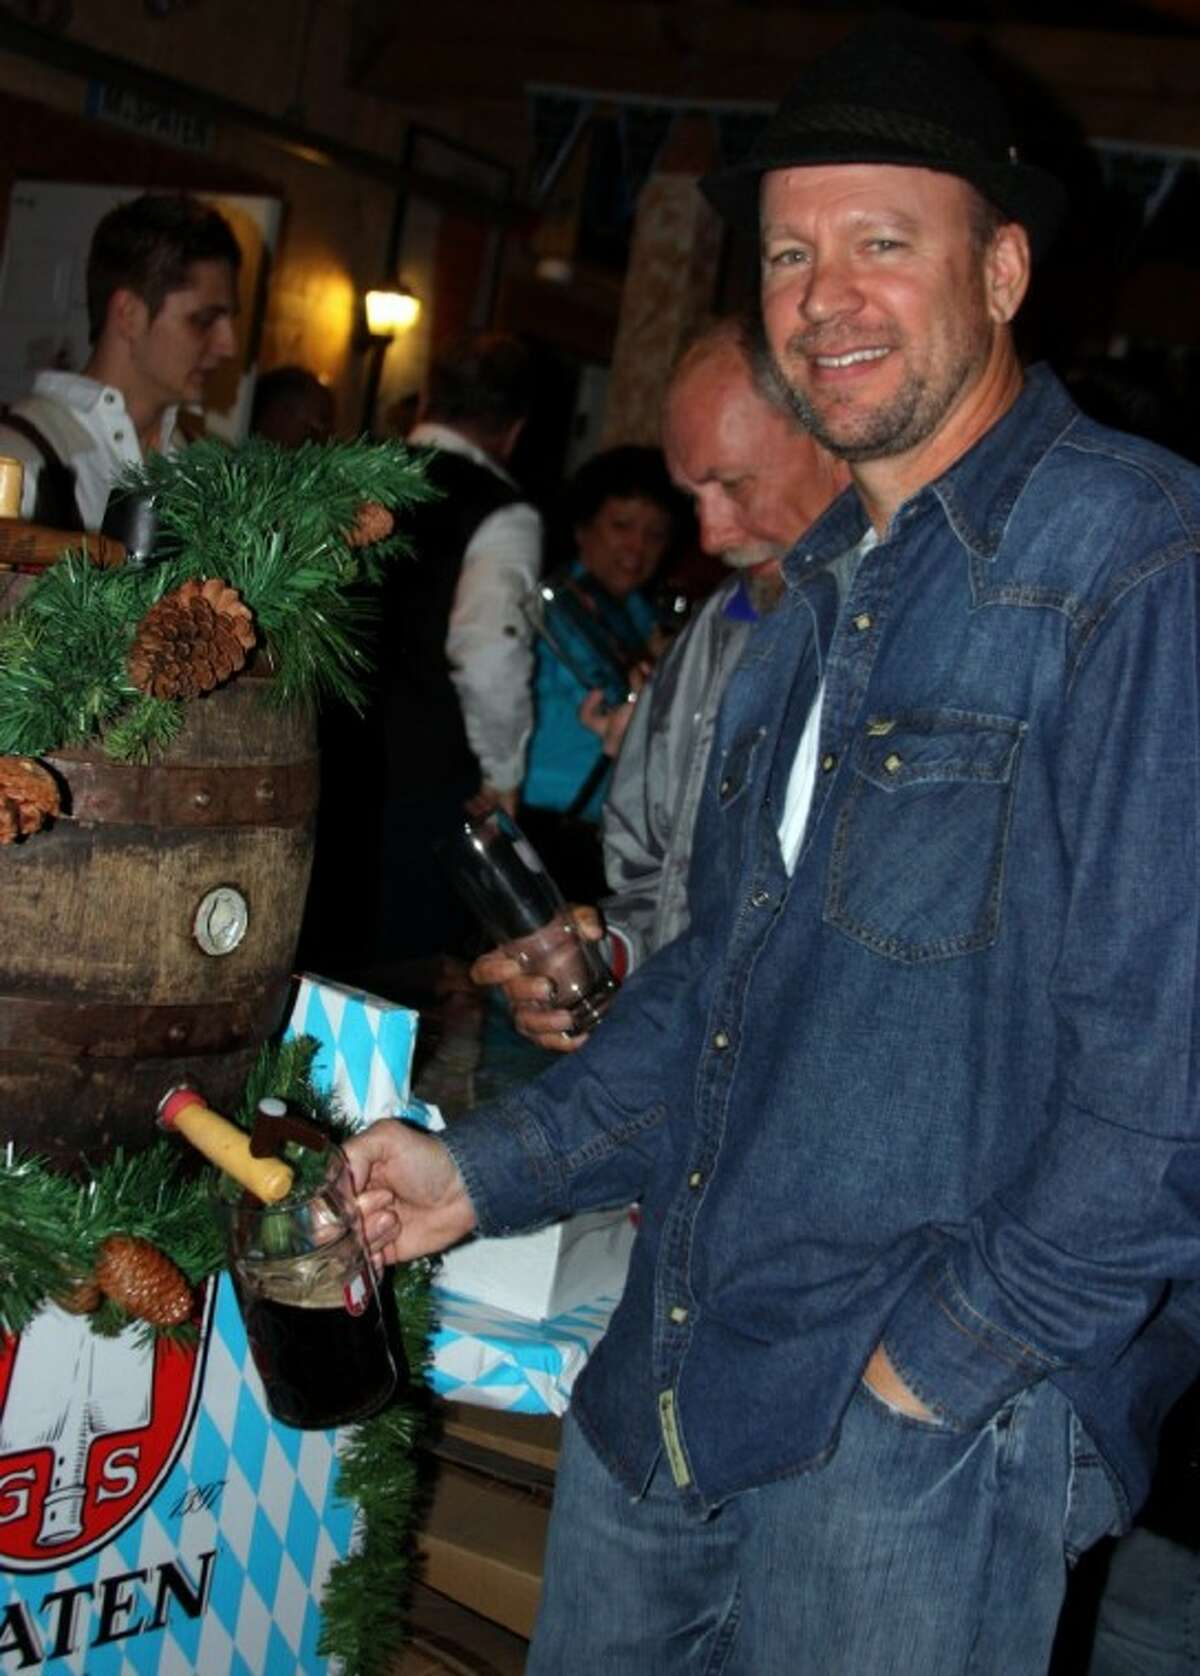 Customers were treated to beer samples at an award ceremony held for King's Biergarten and Restaurant.